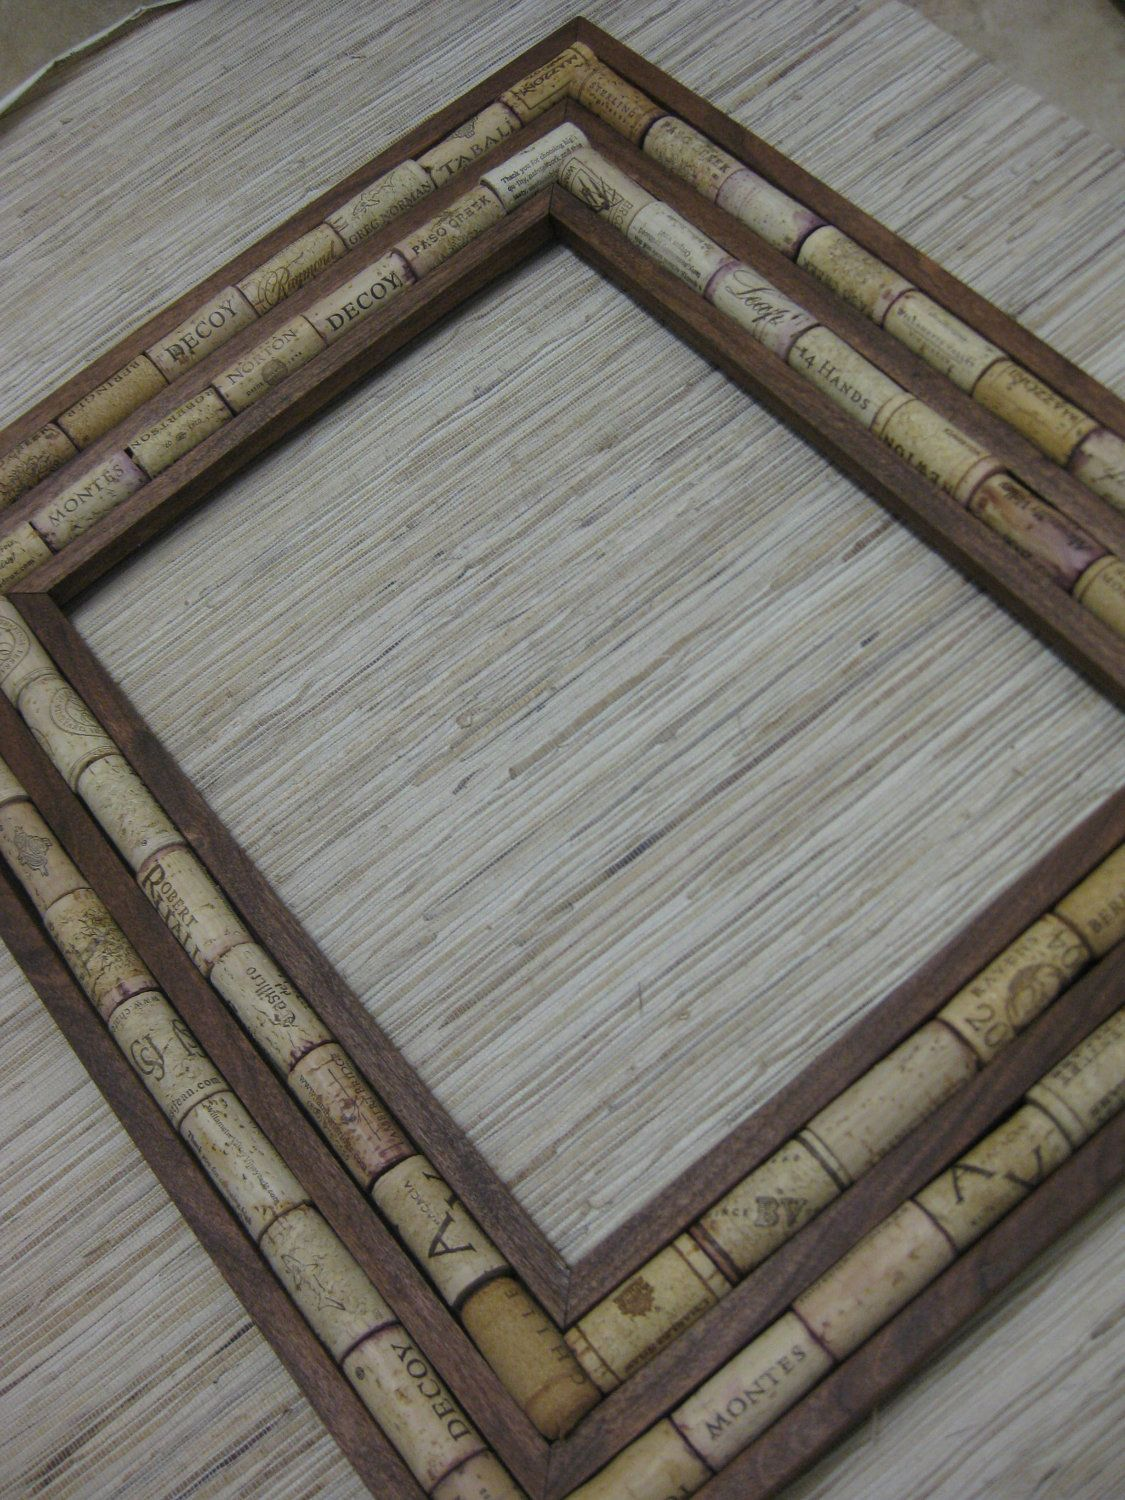 Wine cork craft kits - Sustainable Diy Wine Cork Frame Kit Made From Reclaimed Wood